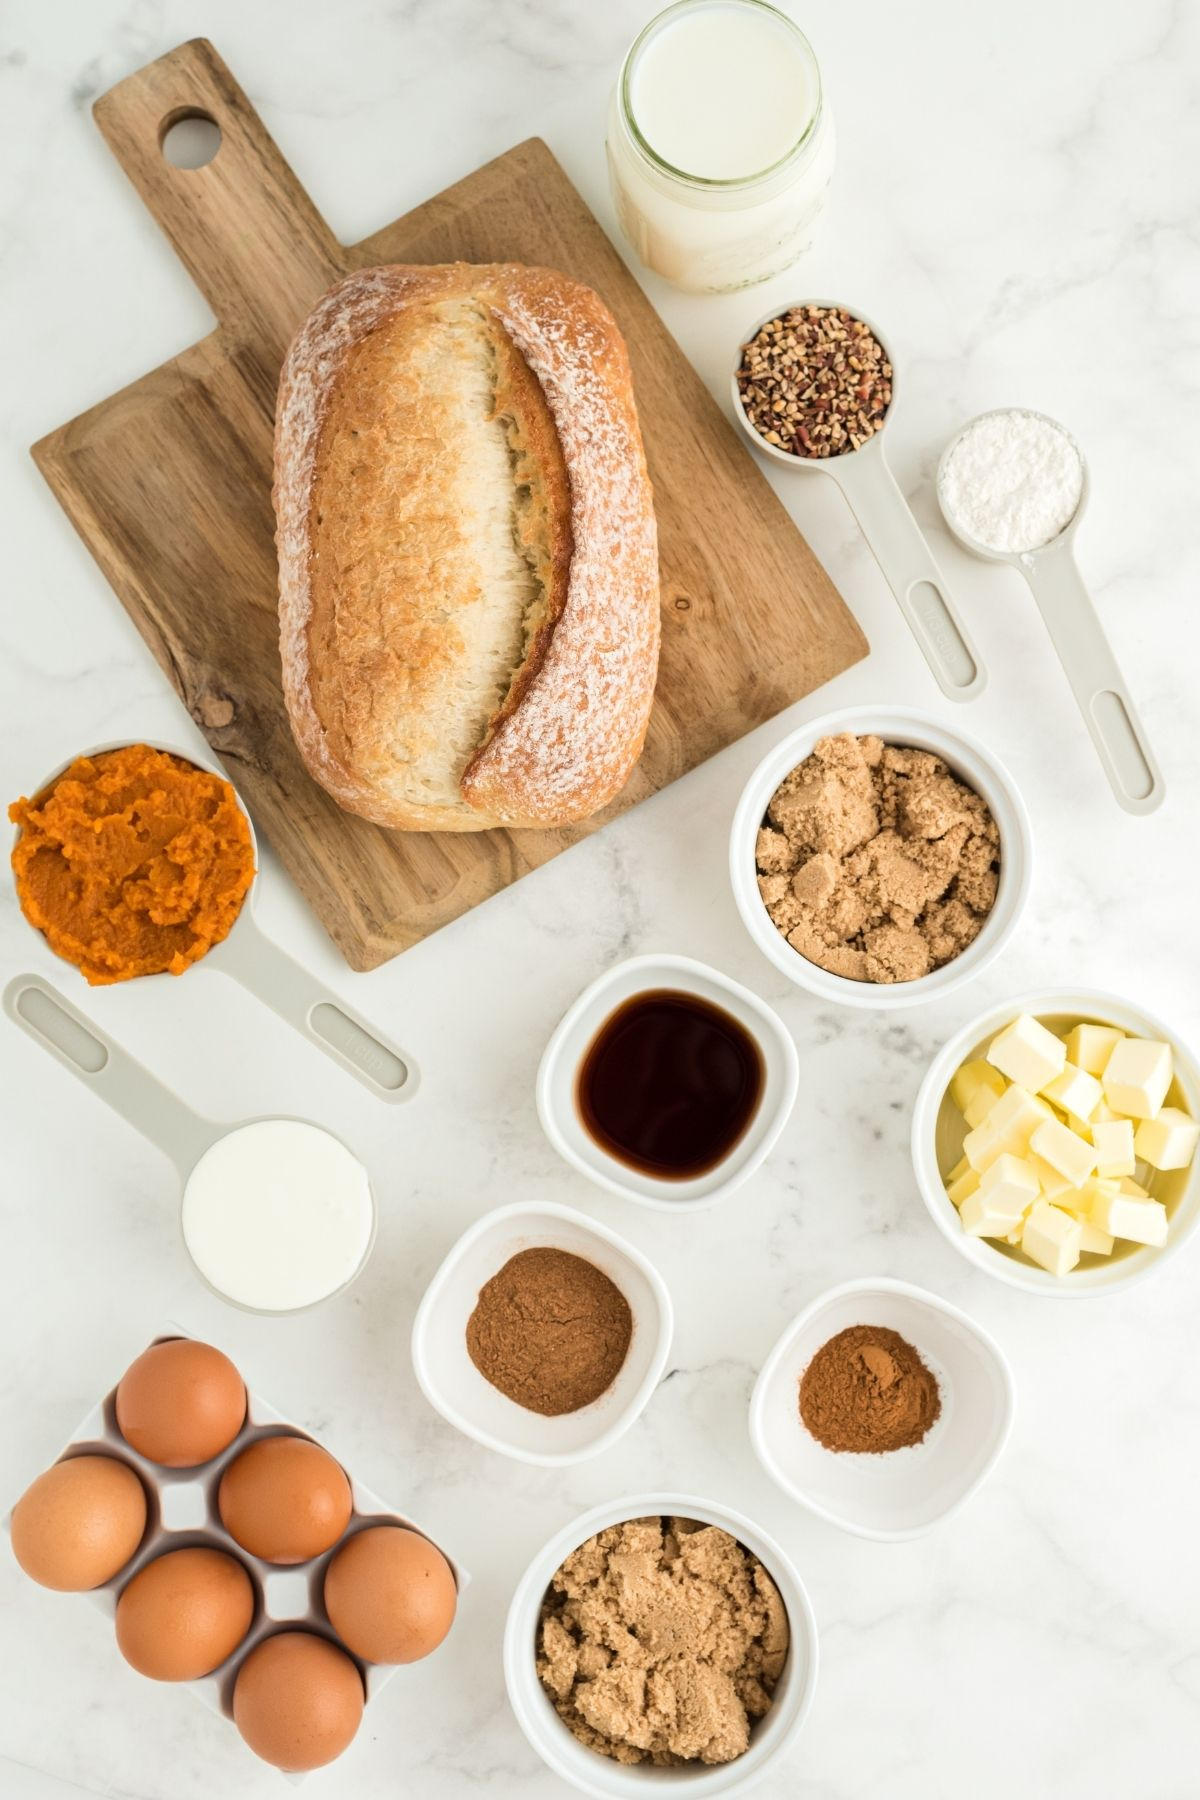 ingredients on white counter: loaf of crusty French bread, pumpkin puree, brown eggs, diced butter, vanilla, pumpkin pie spice, heavy cream, and milk